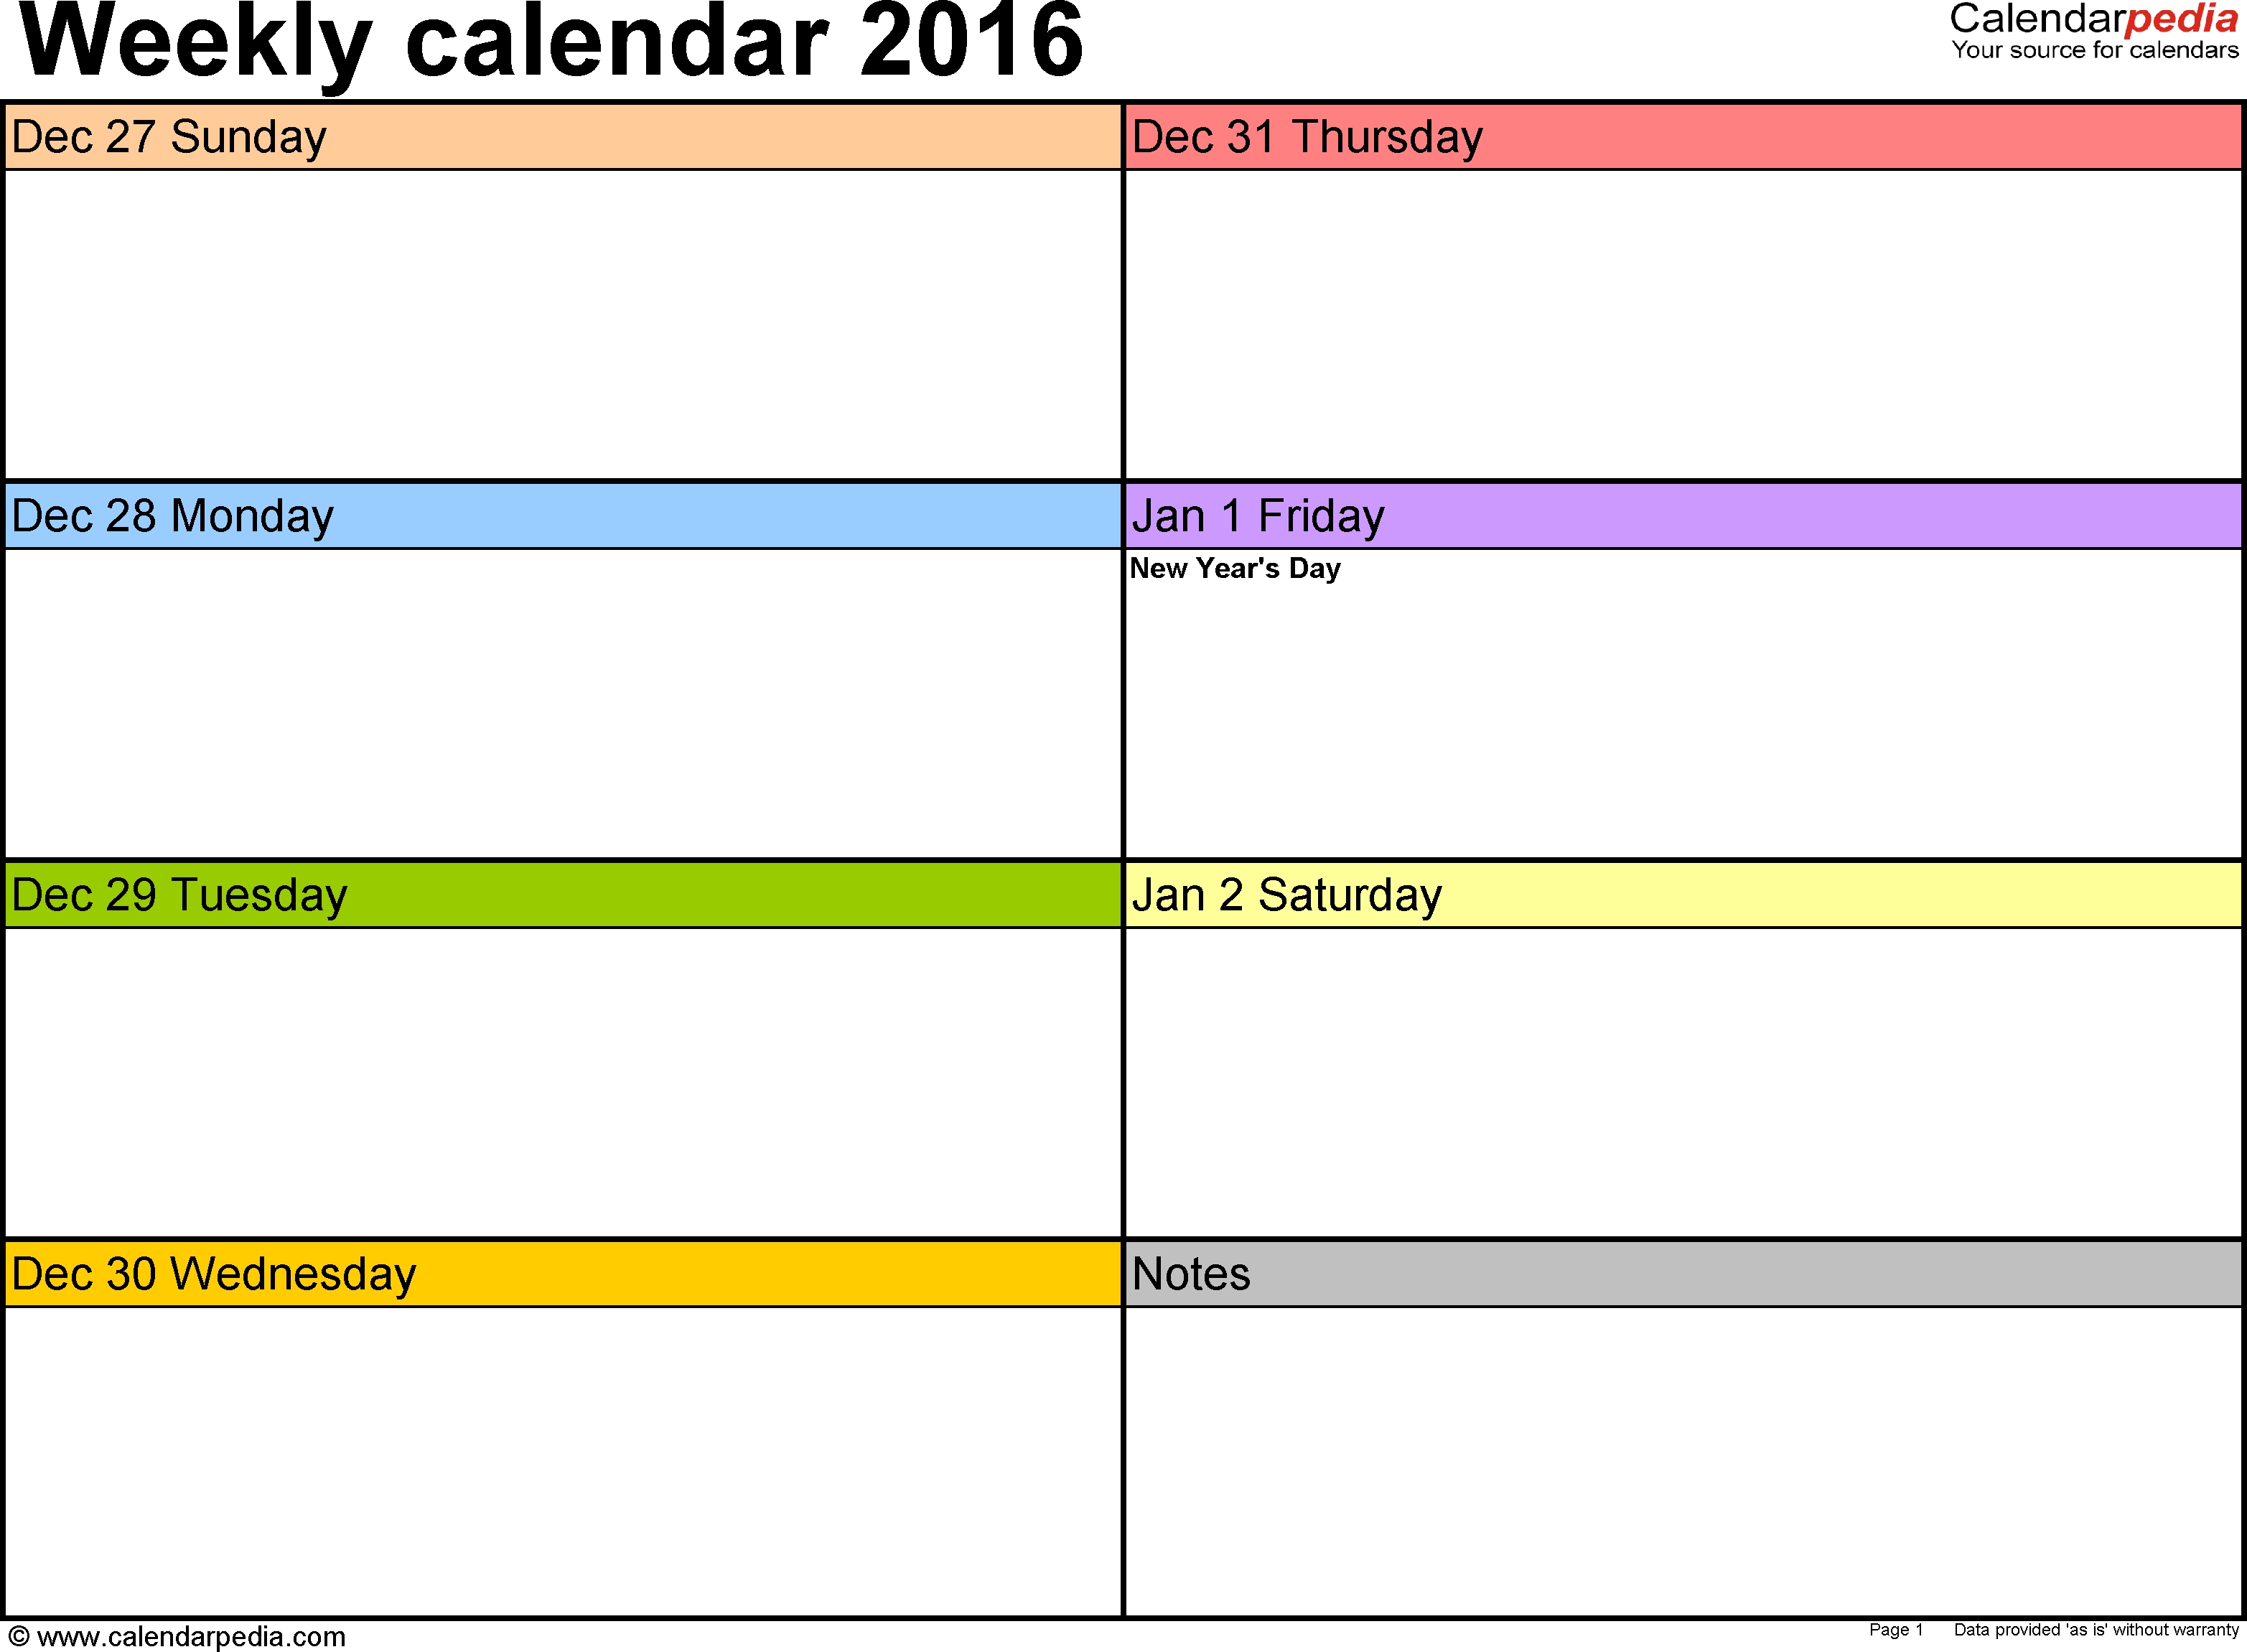 Weekly Calendar 2016 For Word - 12 Free Printable Templates with 7-Day Week Blank Calendar Template